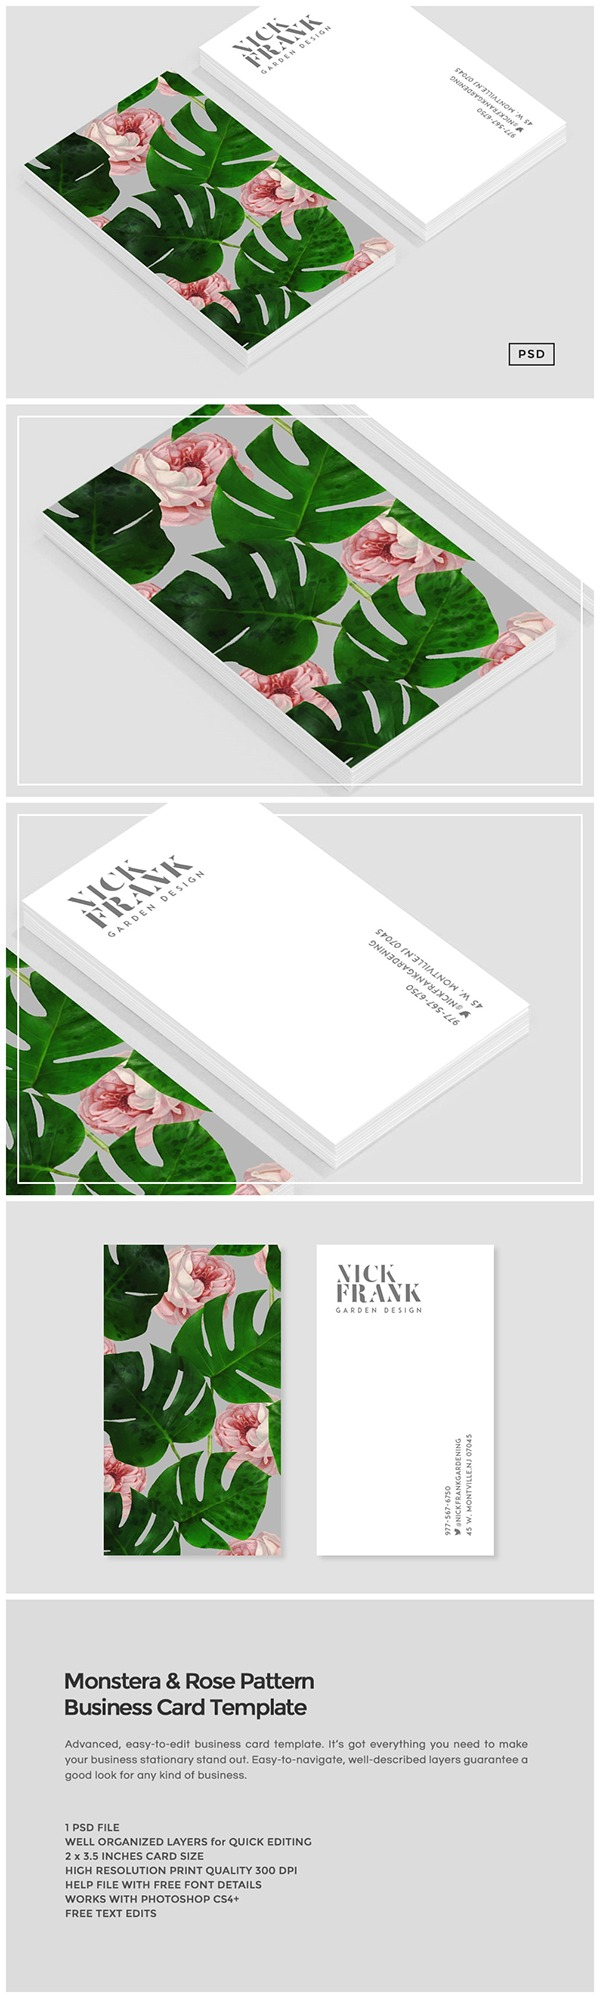 Monstera rose pattern business card template on behance reheart Images